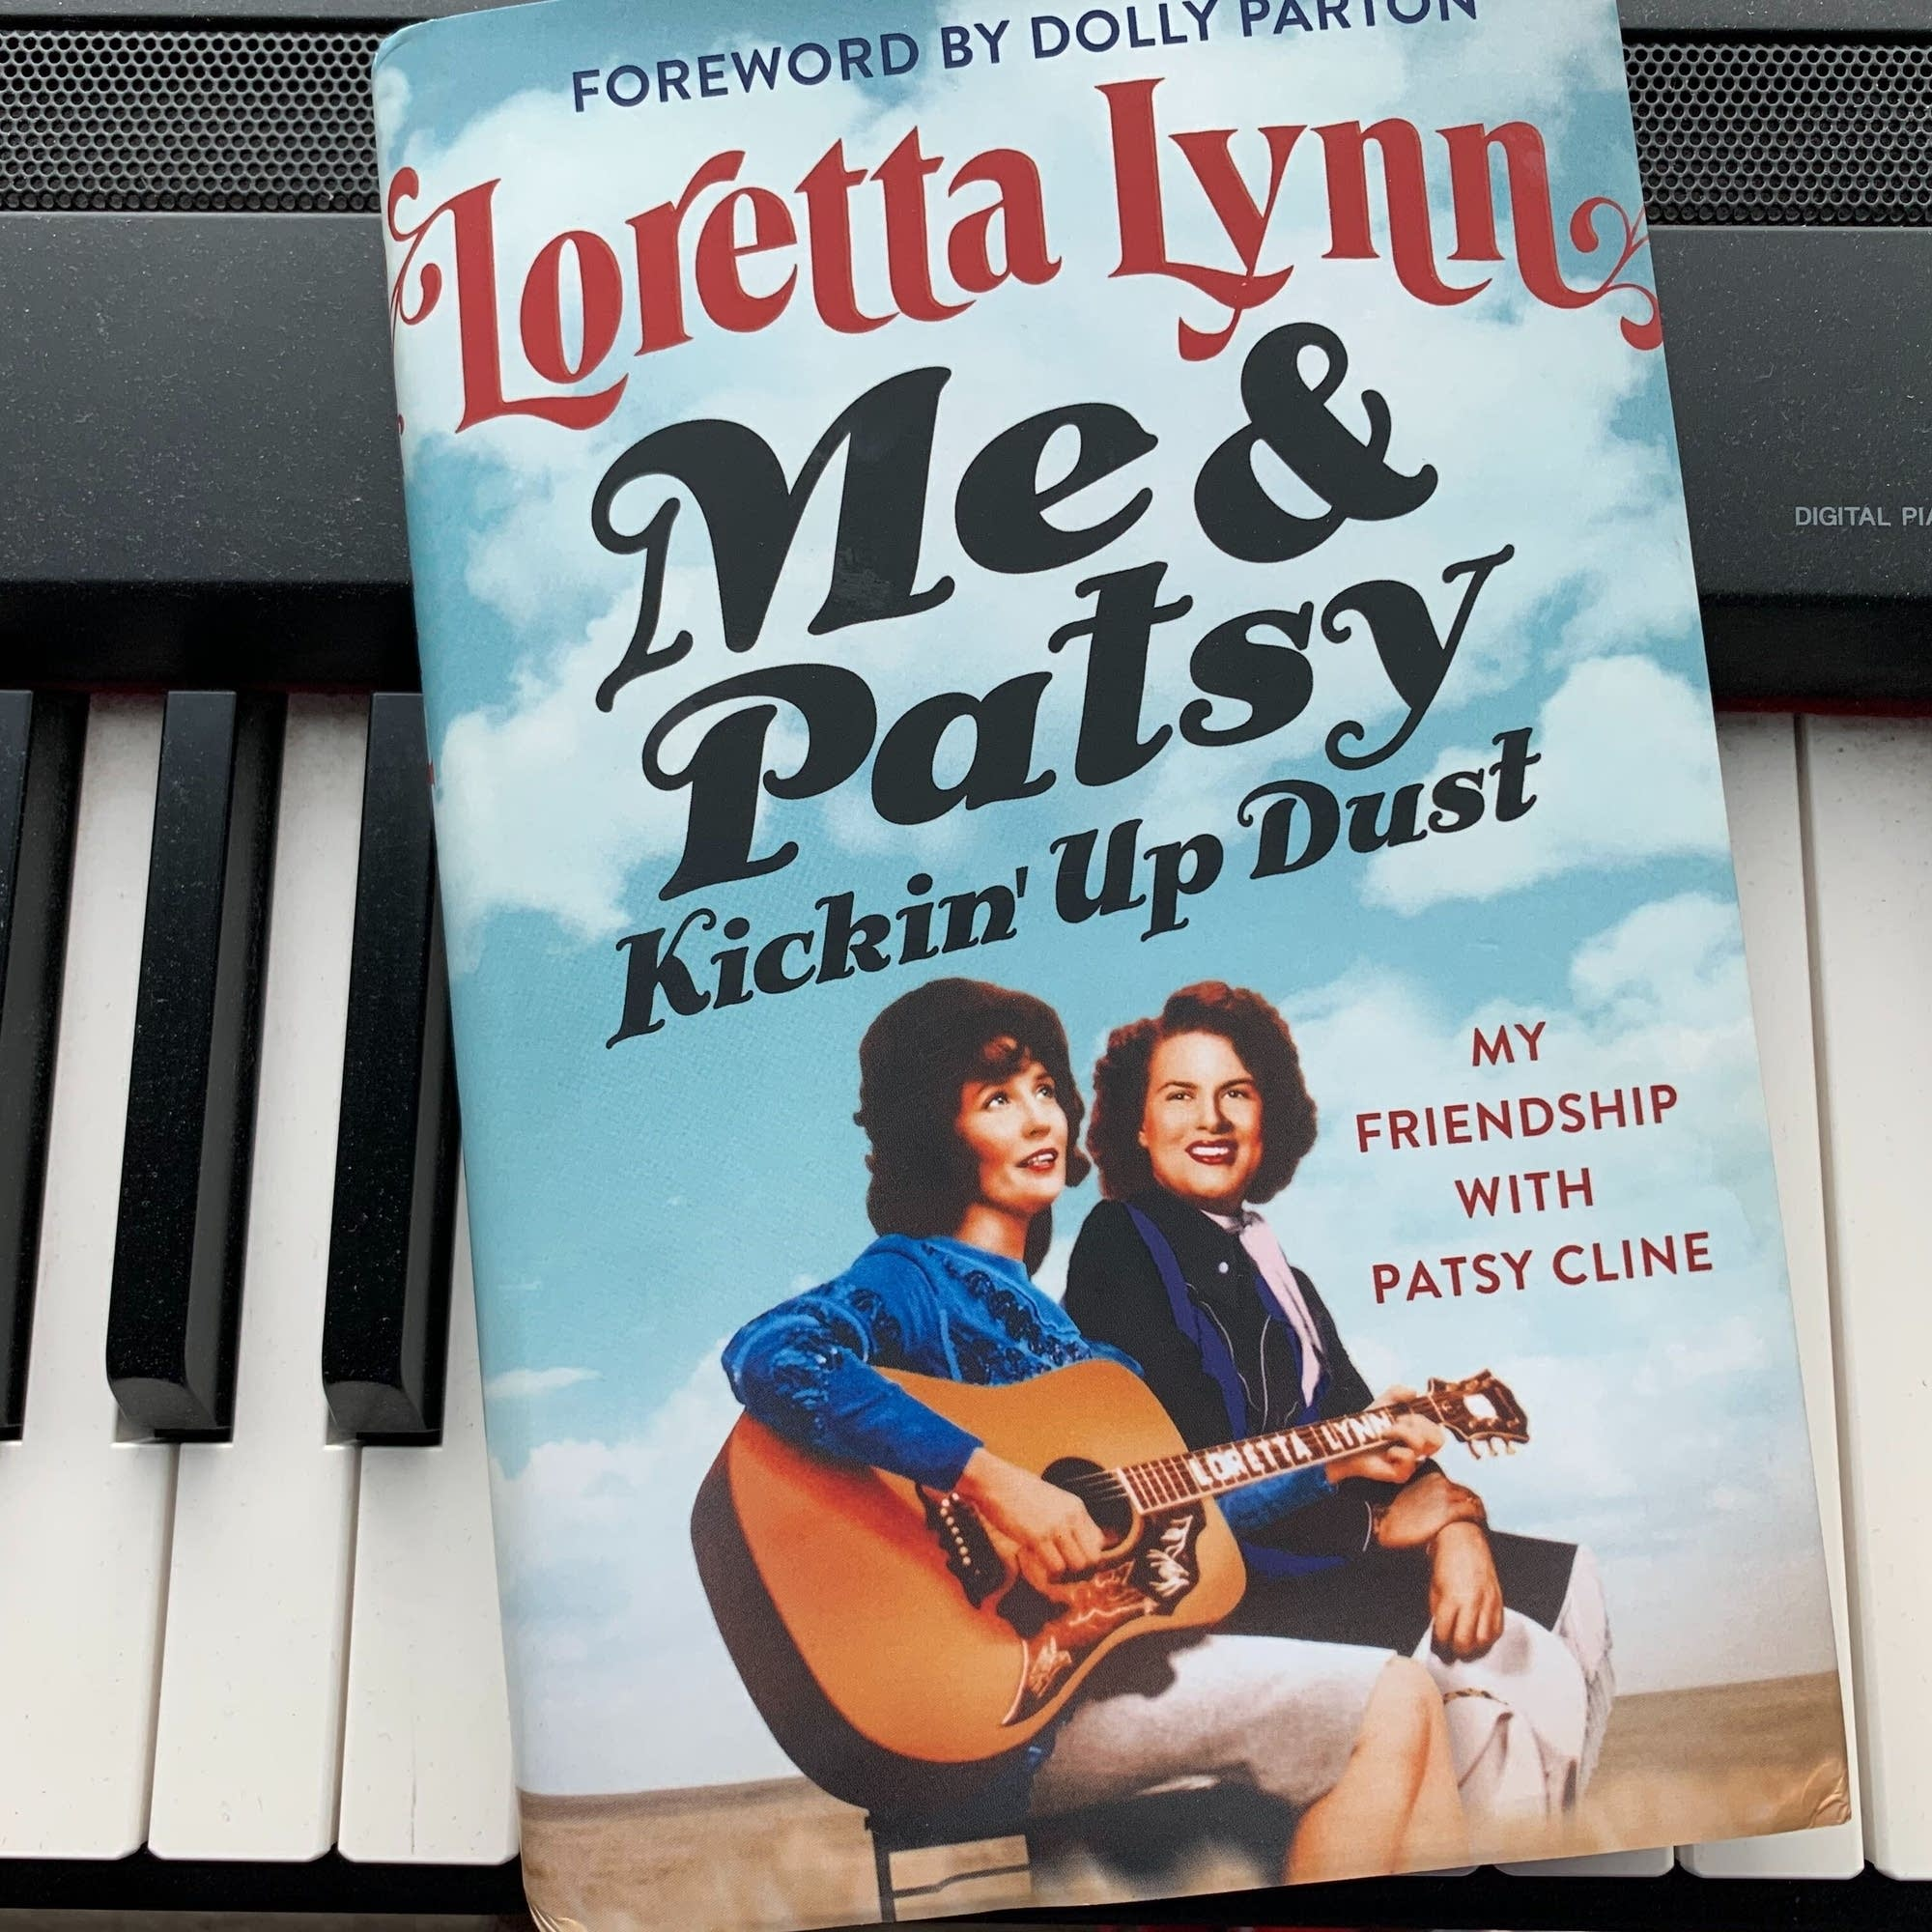 'Me & Patsy Kickin' Up Dust: My Friendship with Patsy Cline.'